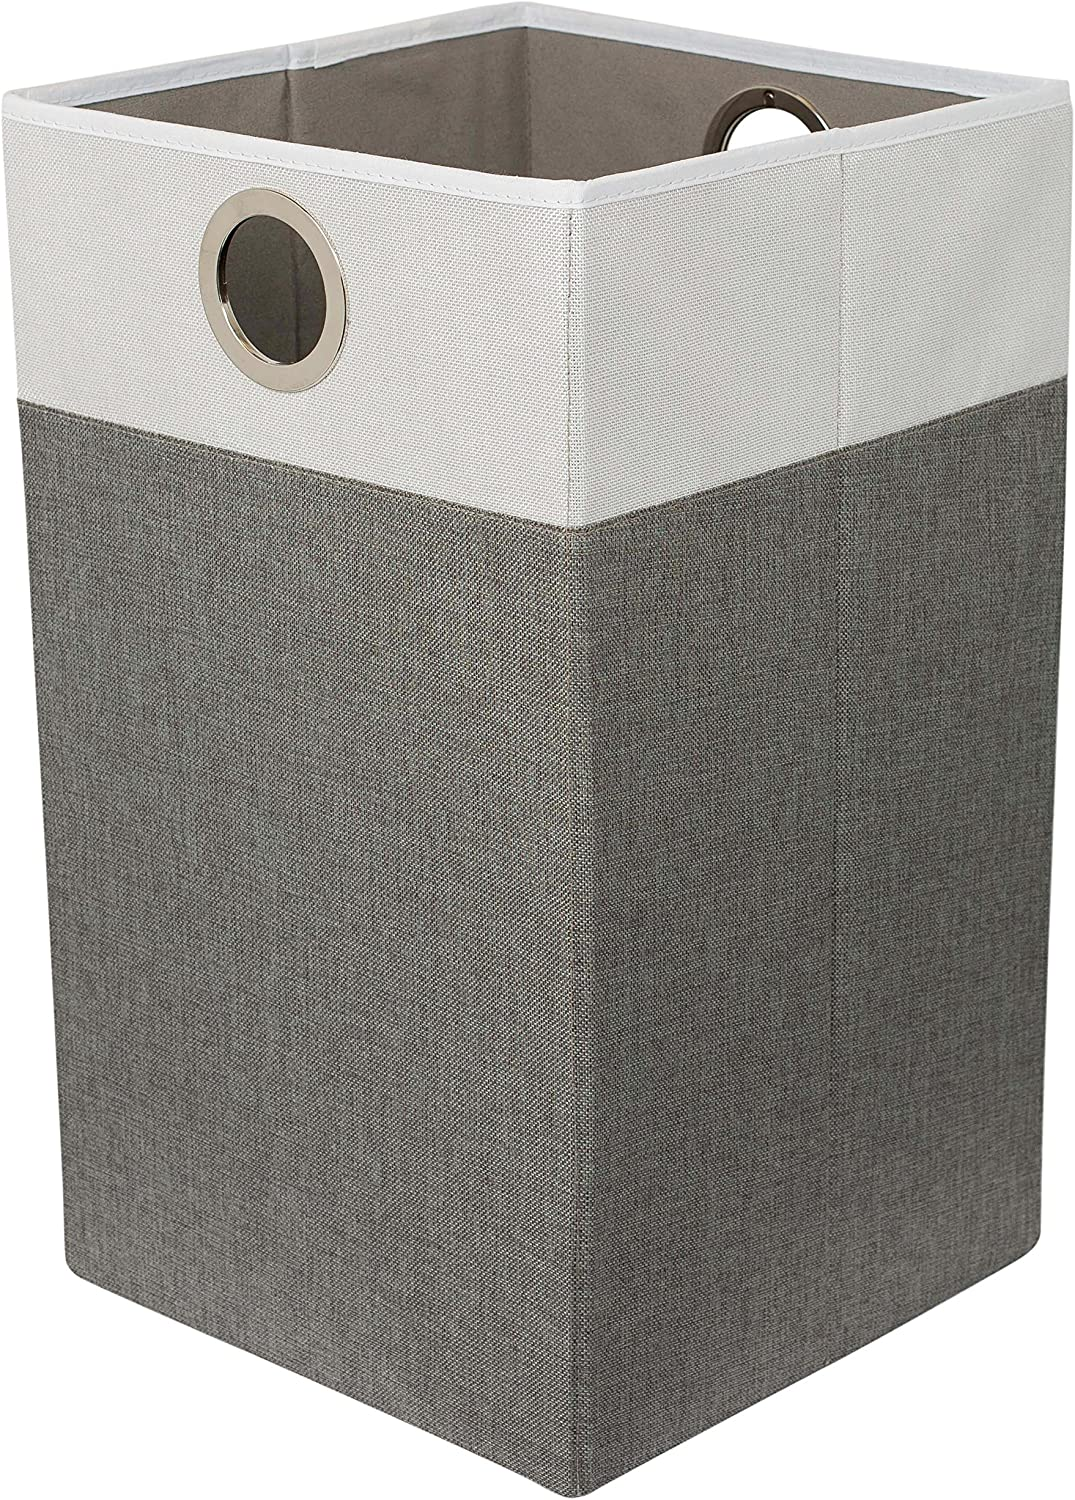 BIRDROCK HOME Folding Cloth Laundry Hamper with Handles - Dirty Clothes Sorter - Easy Storage - Collapsible - Grey and White